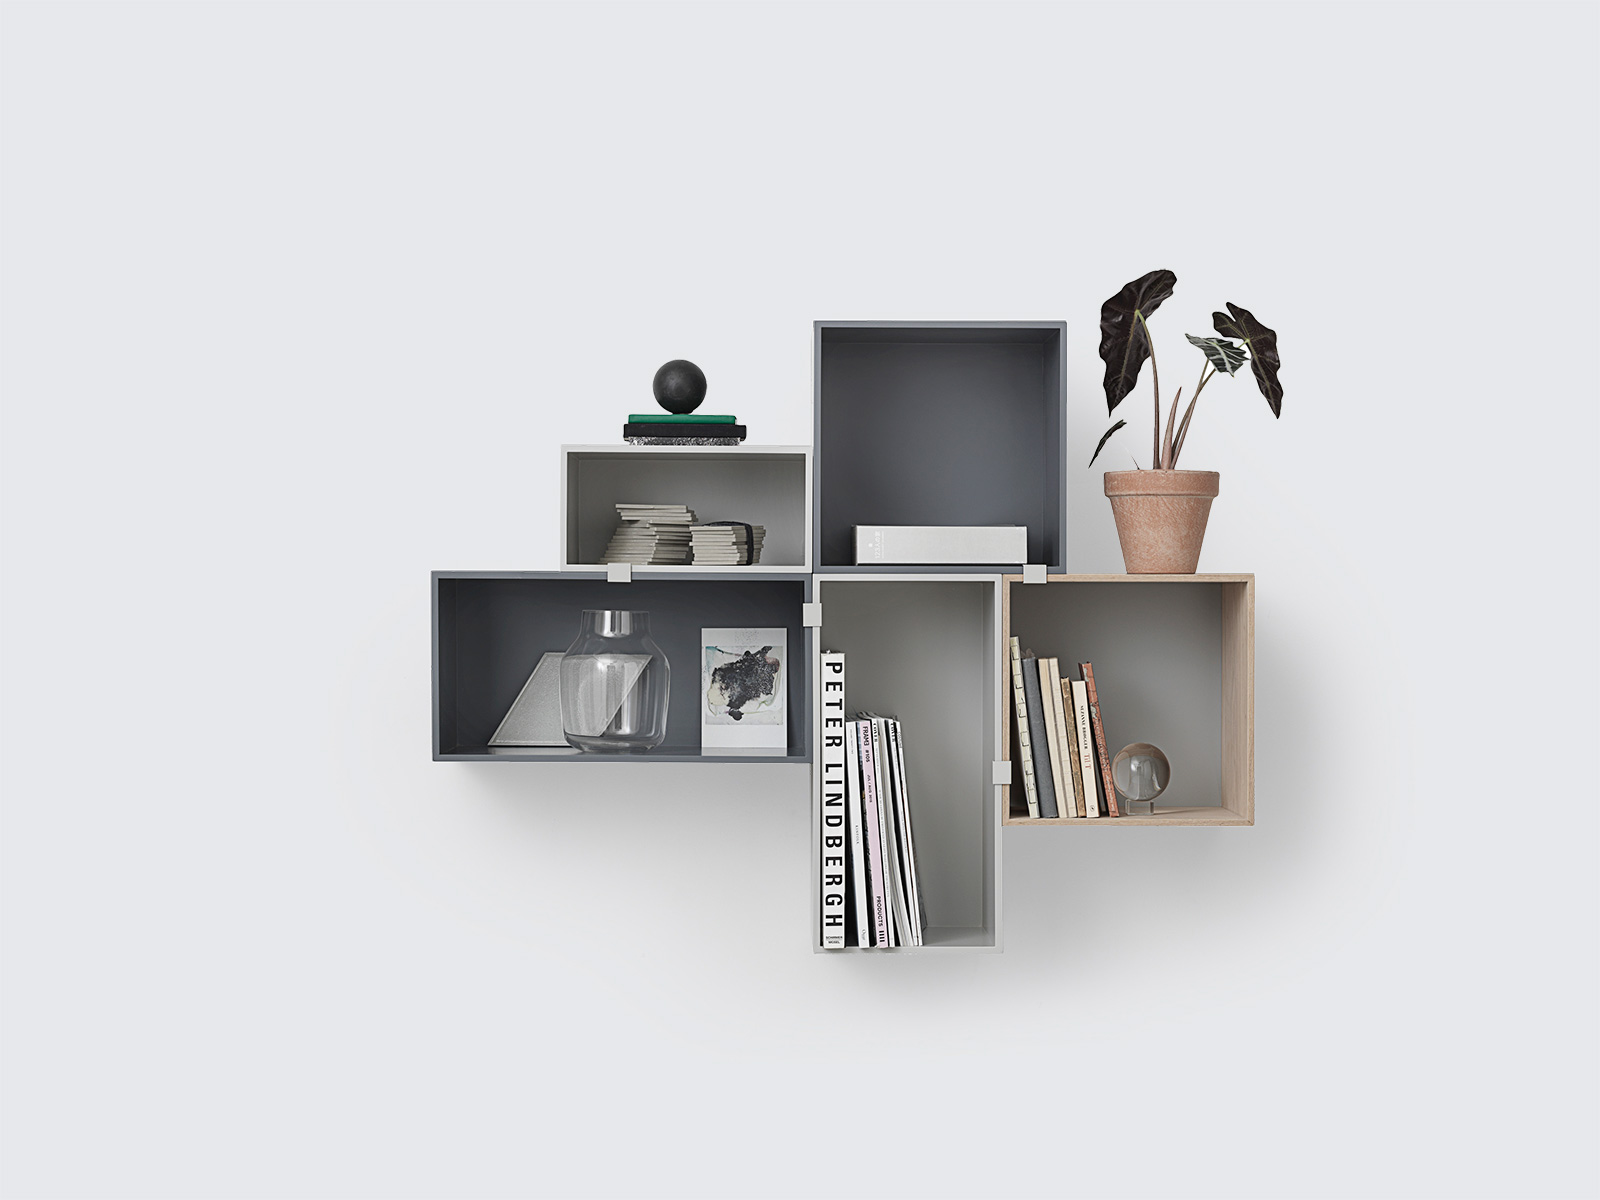 Muuto Regal muuto regal mini stacked dunkelgrau groß eur 139 00 gt